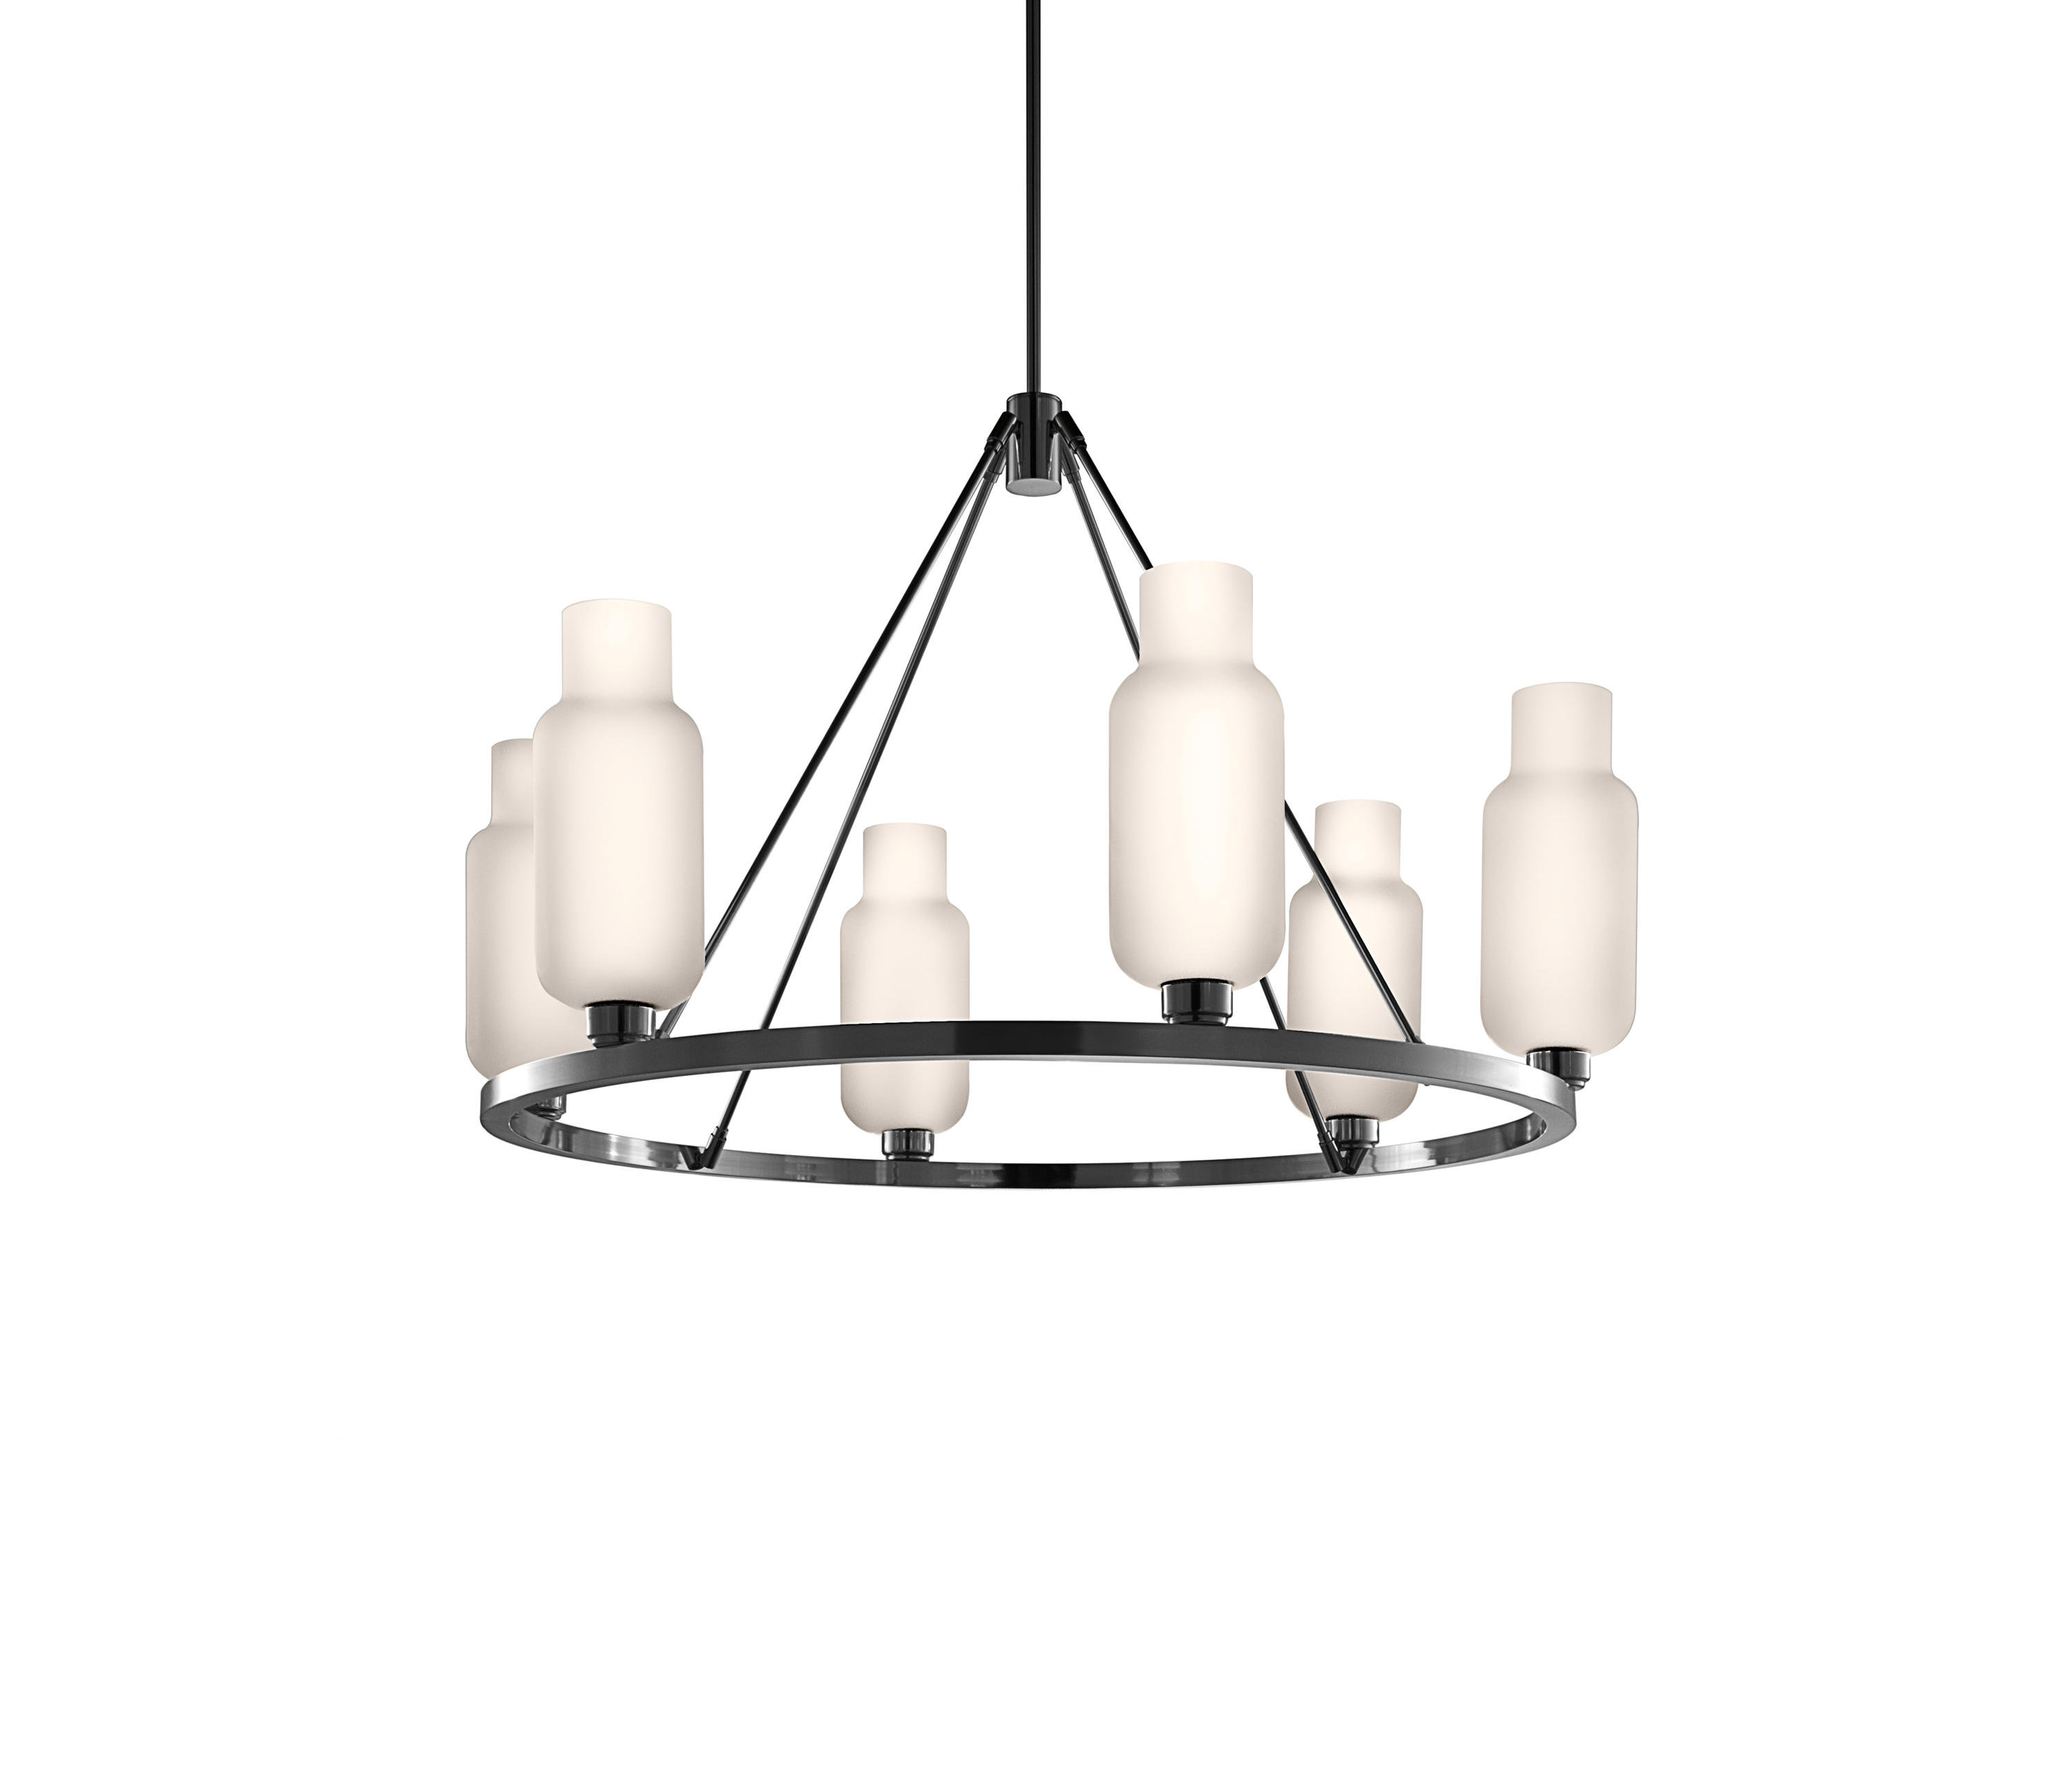 modern lamp crystal tadpoles contemporary lovely for pics room chandelier home chandeliers industrial world dining design